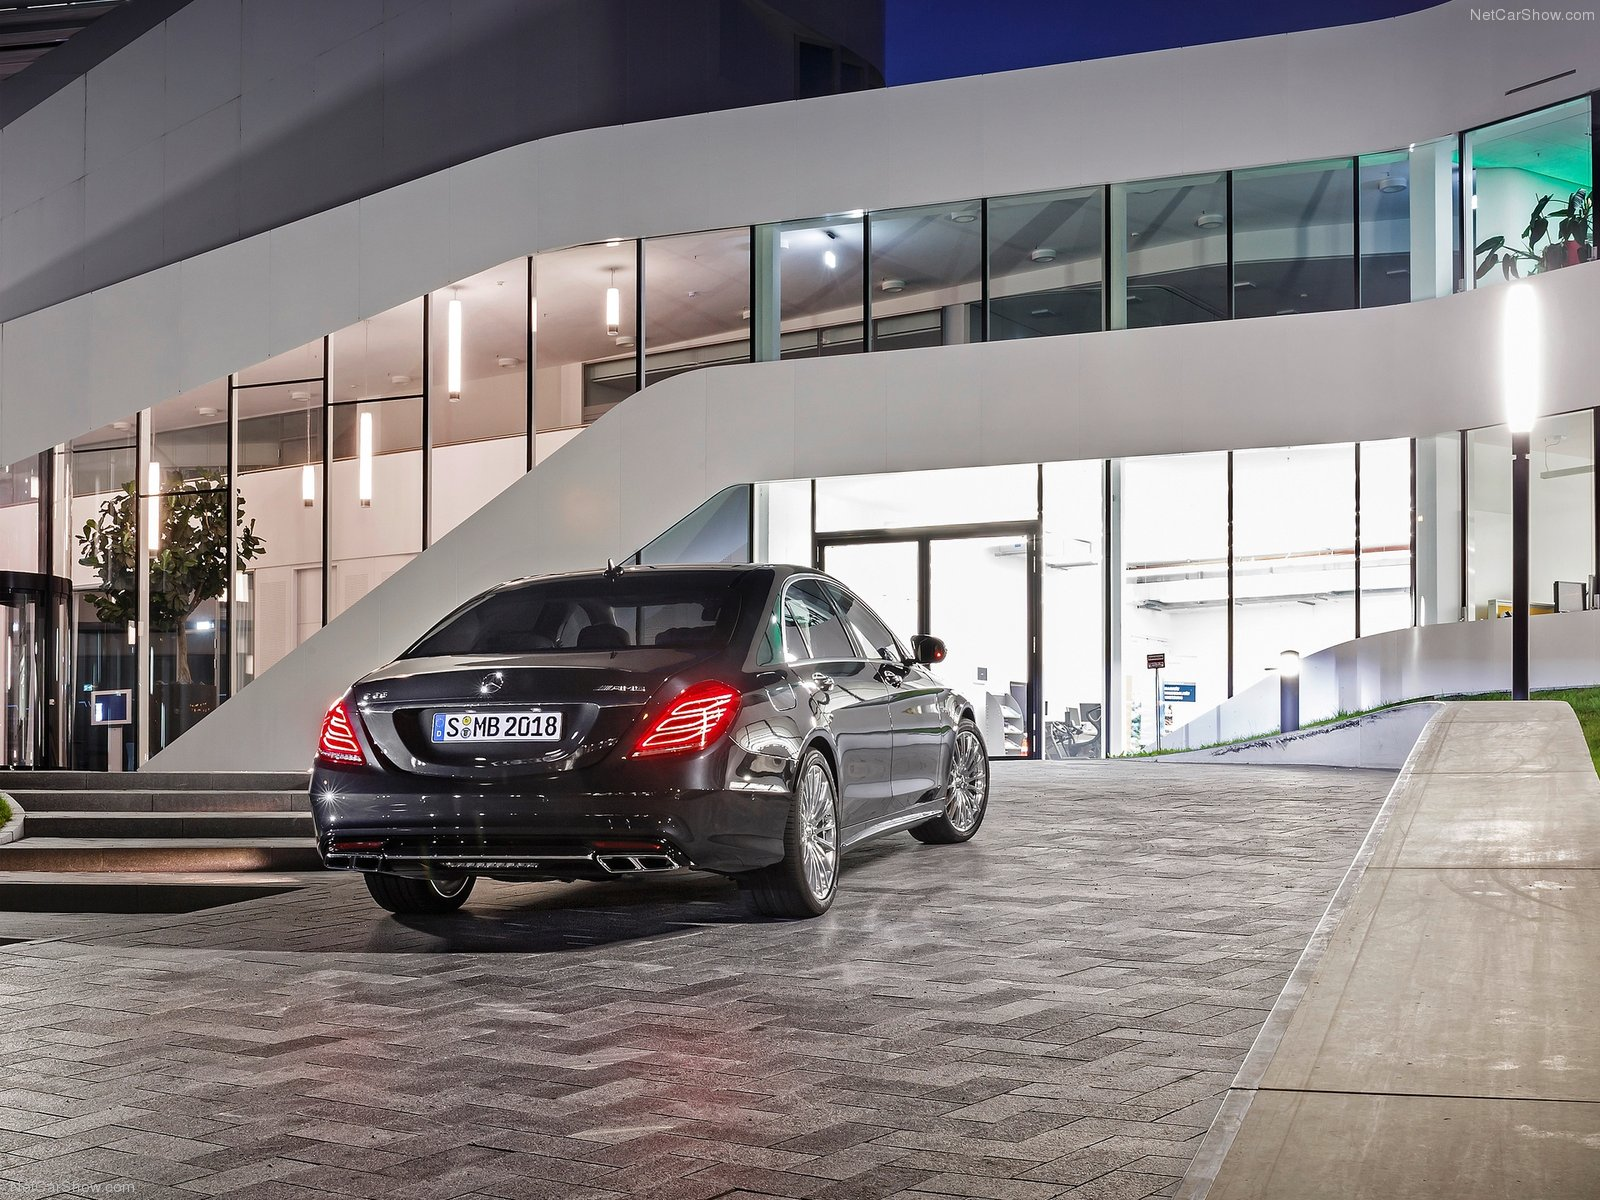 Mercedes-Benz-S65_AMG_2014_1600x1200_wallpaper_05.jpg